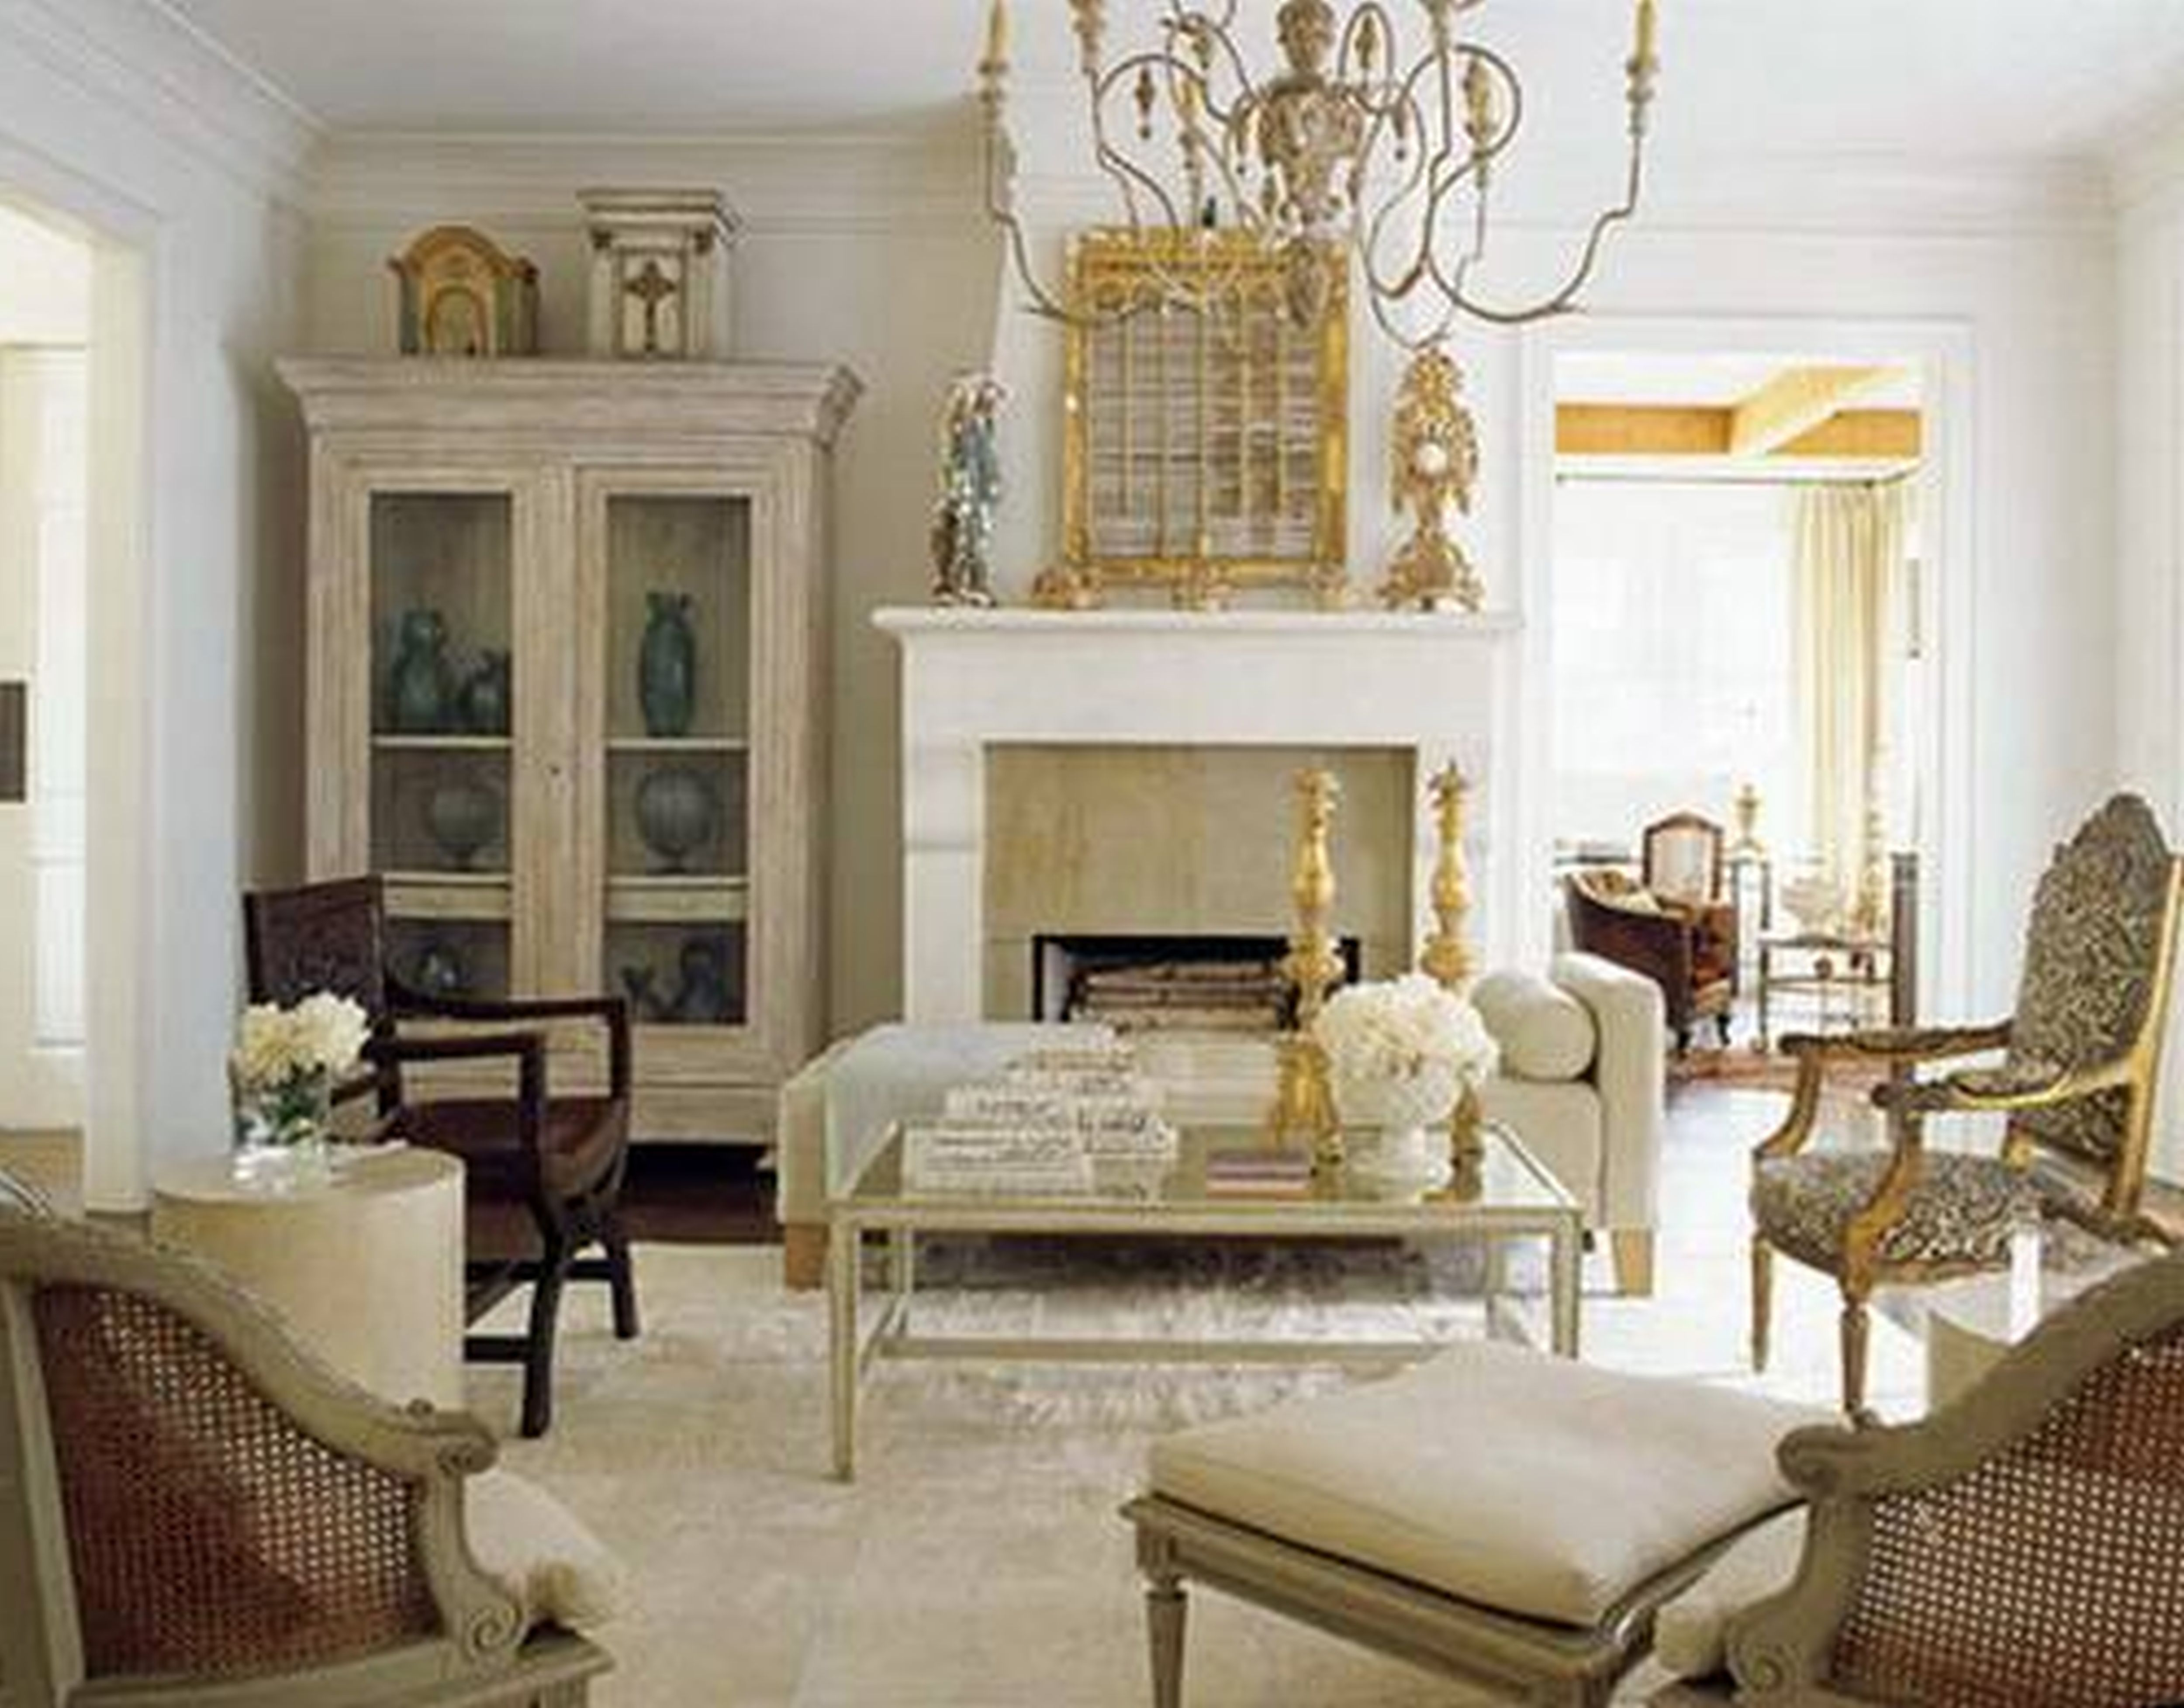 Living Room Traditional Small Living Room Design Ideas French Country Tradit French Living Rooms Living Room Decor Country French Country Living Room Furniture